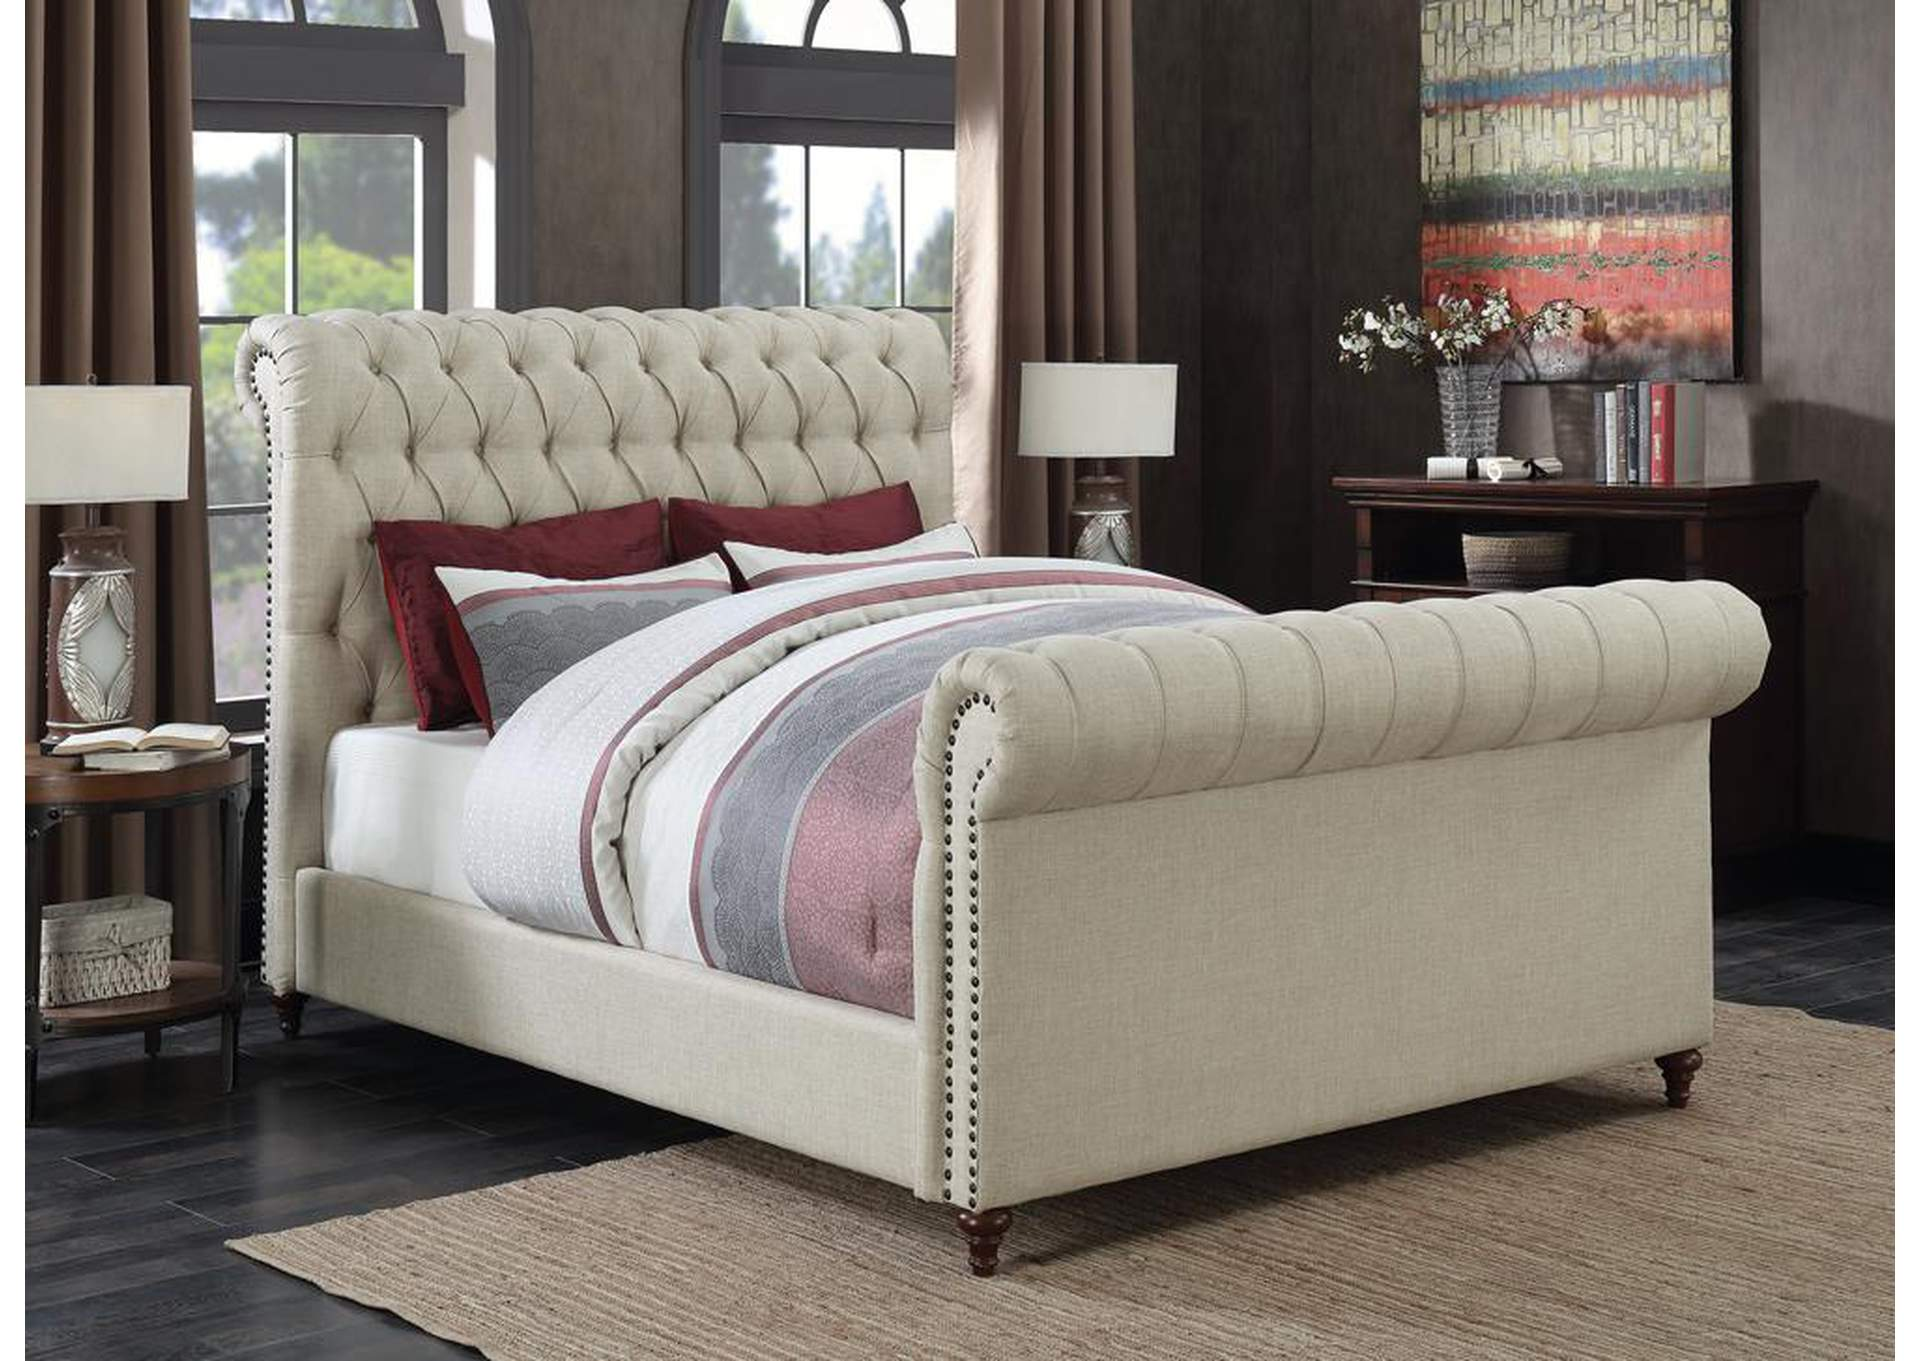 Beige Upholstered Queen Sleigh Bed,Coaster Furniture